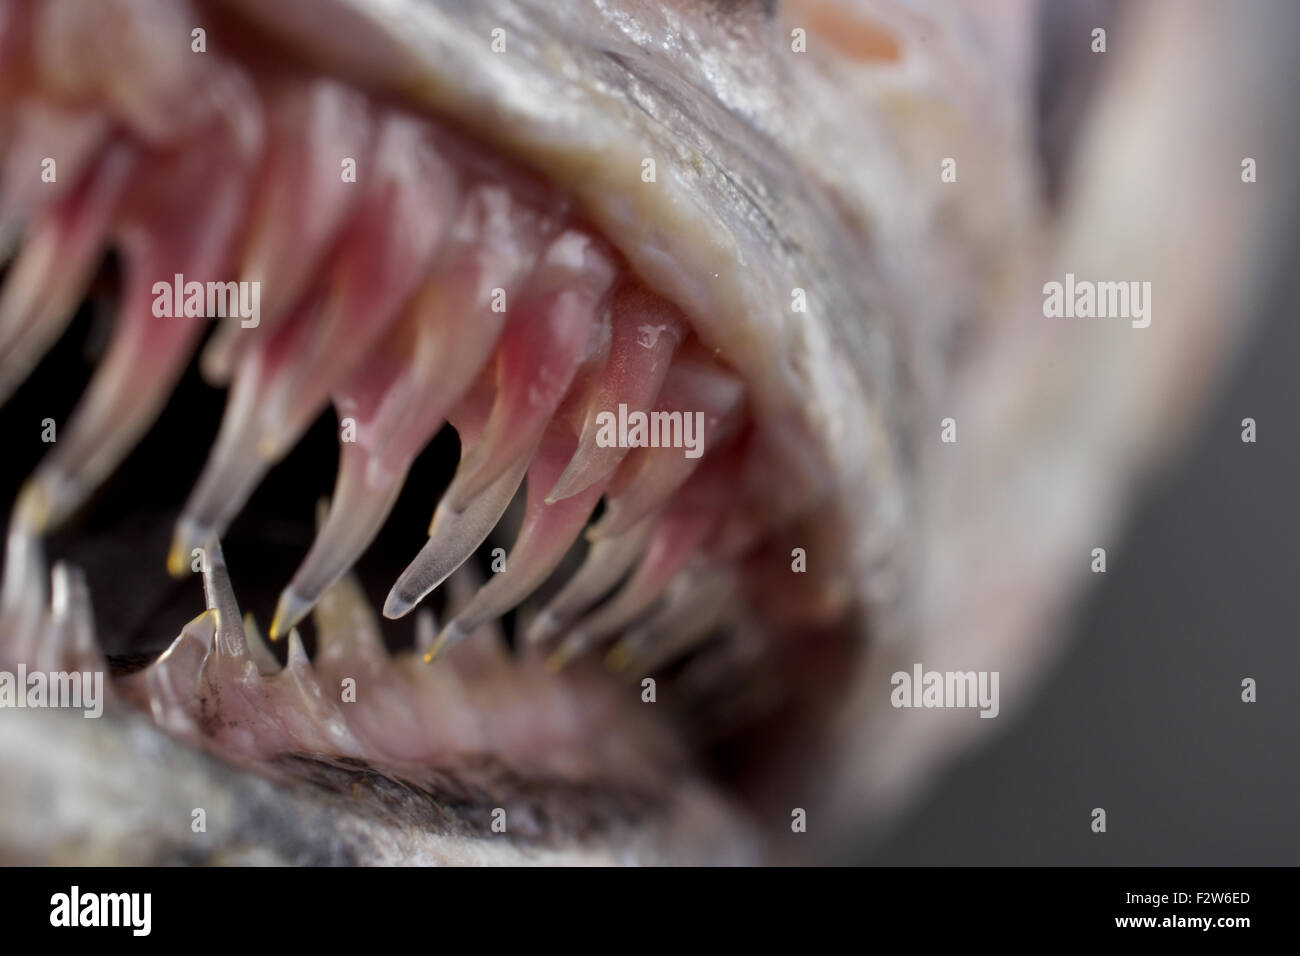 Scary Fish Stock Photos Scary Fish Stock Images Alamy